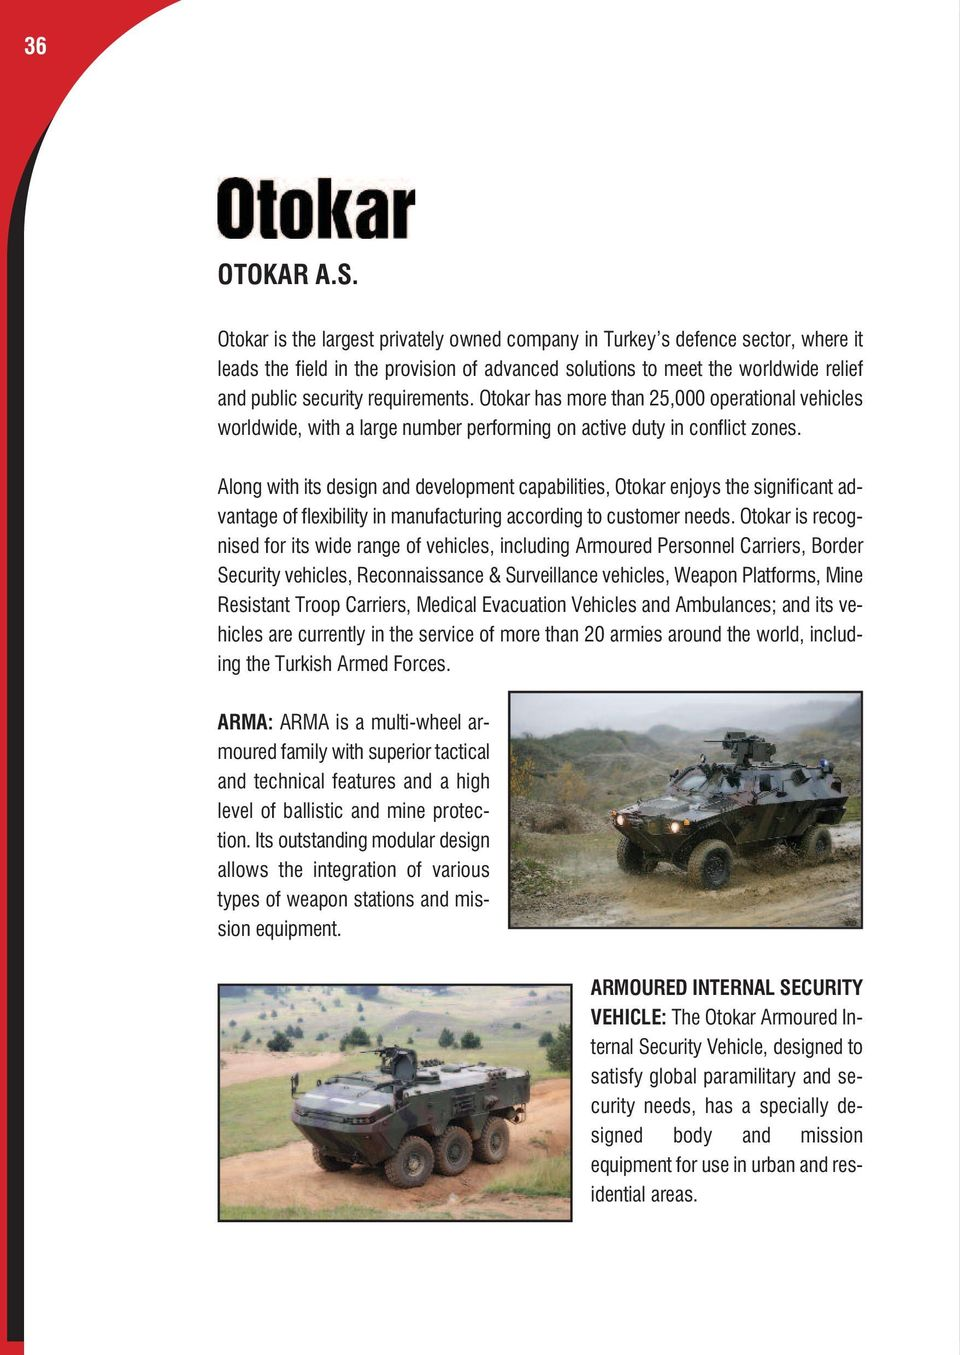 Otokar has more than 25,000 operational vehicles worldwide, with a large number performing on active duty in conflict zones.